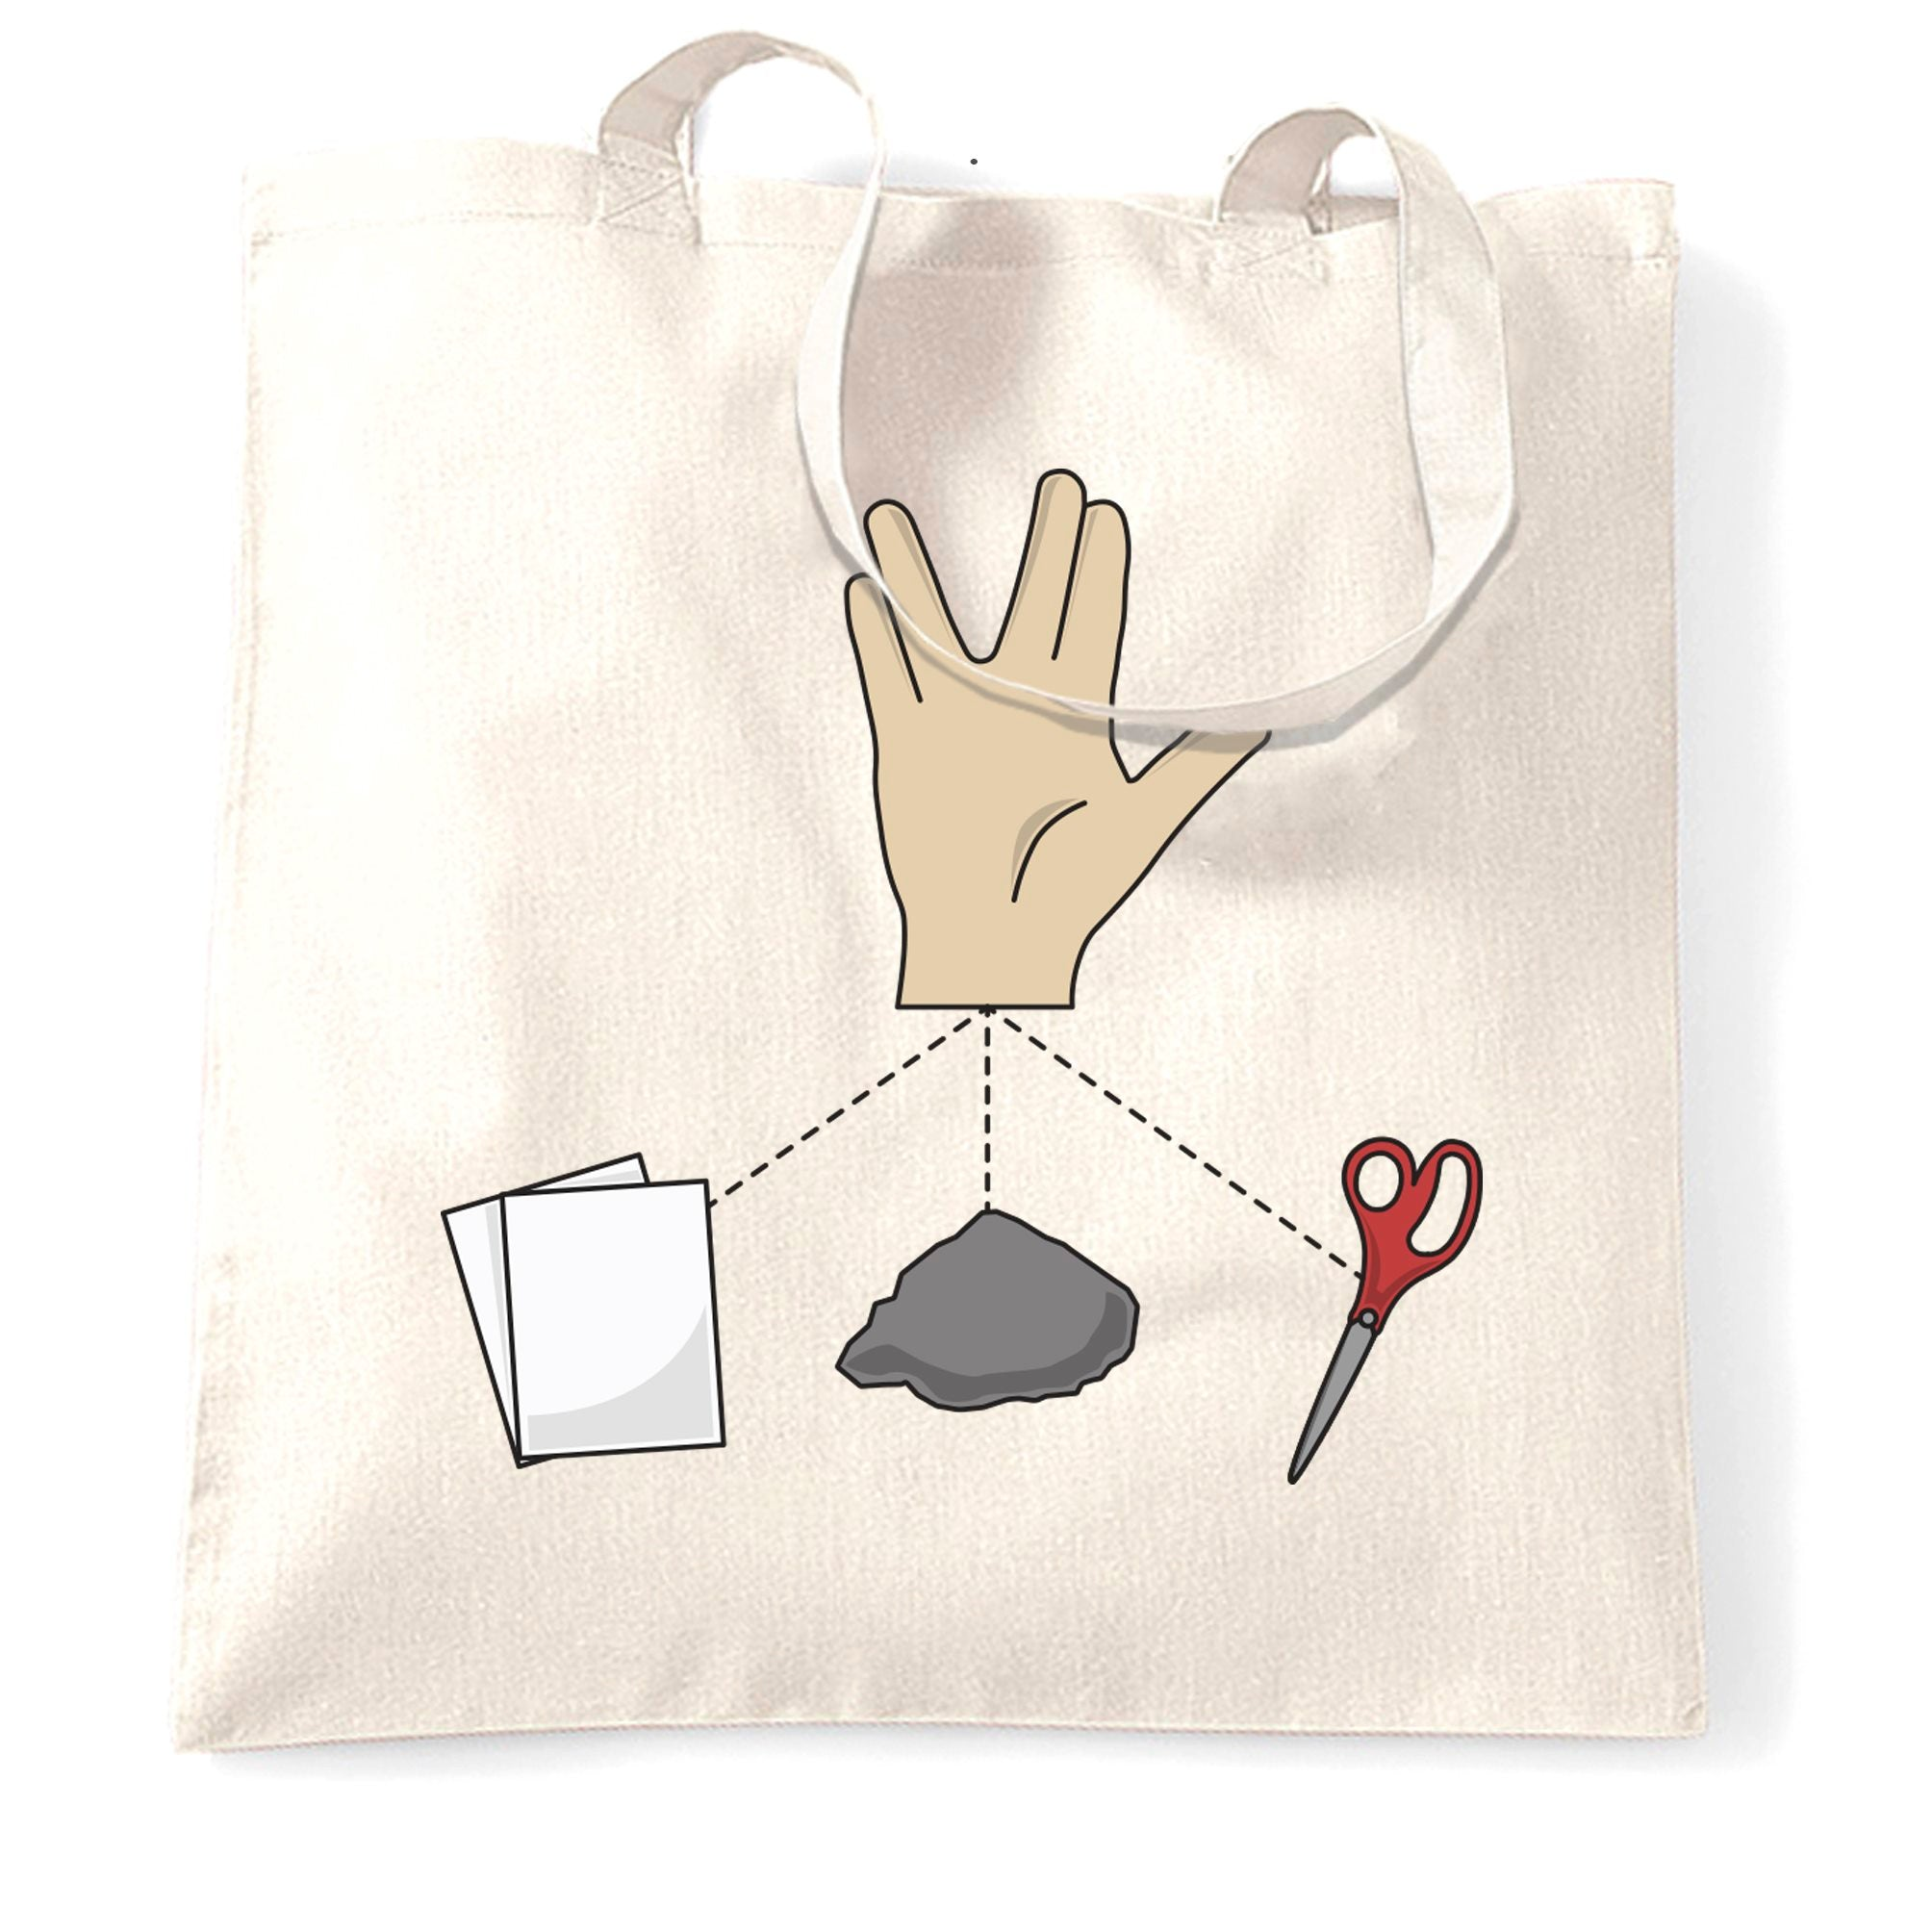 Nerdy Tote Bag Rock, Paper, Scissors and Spock Game